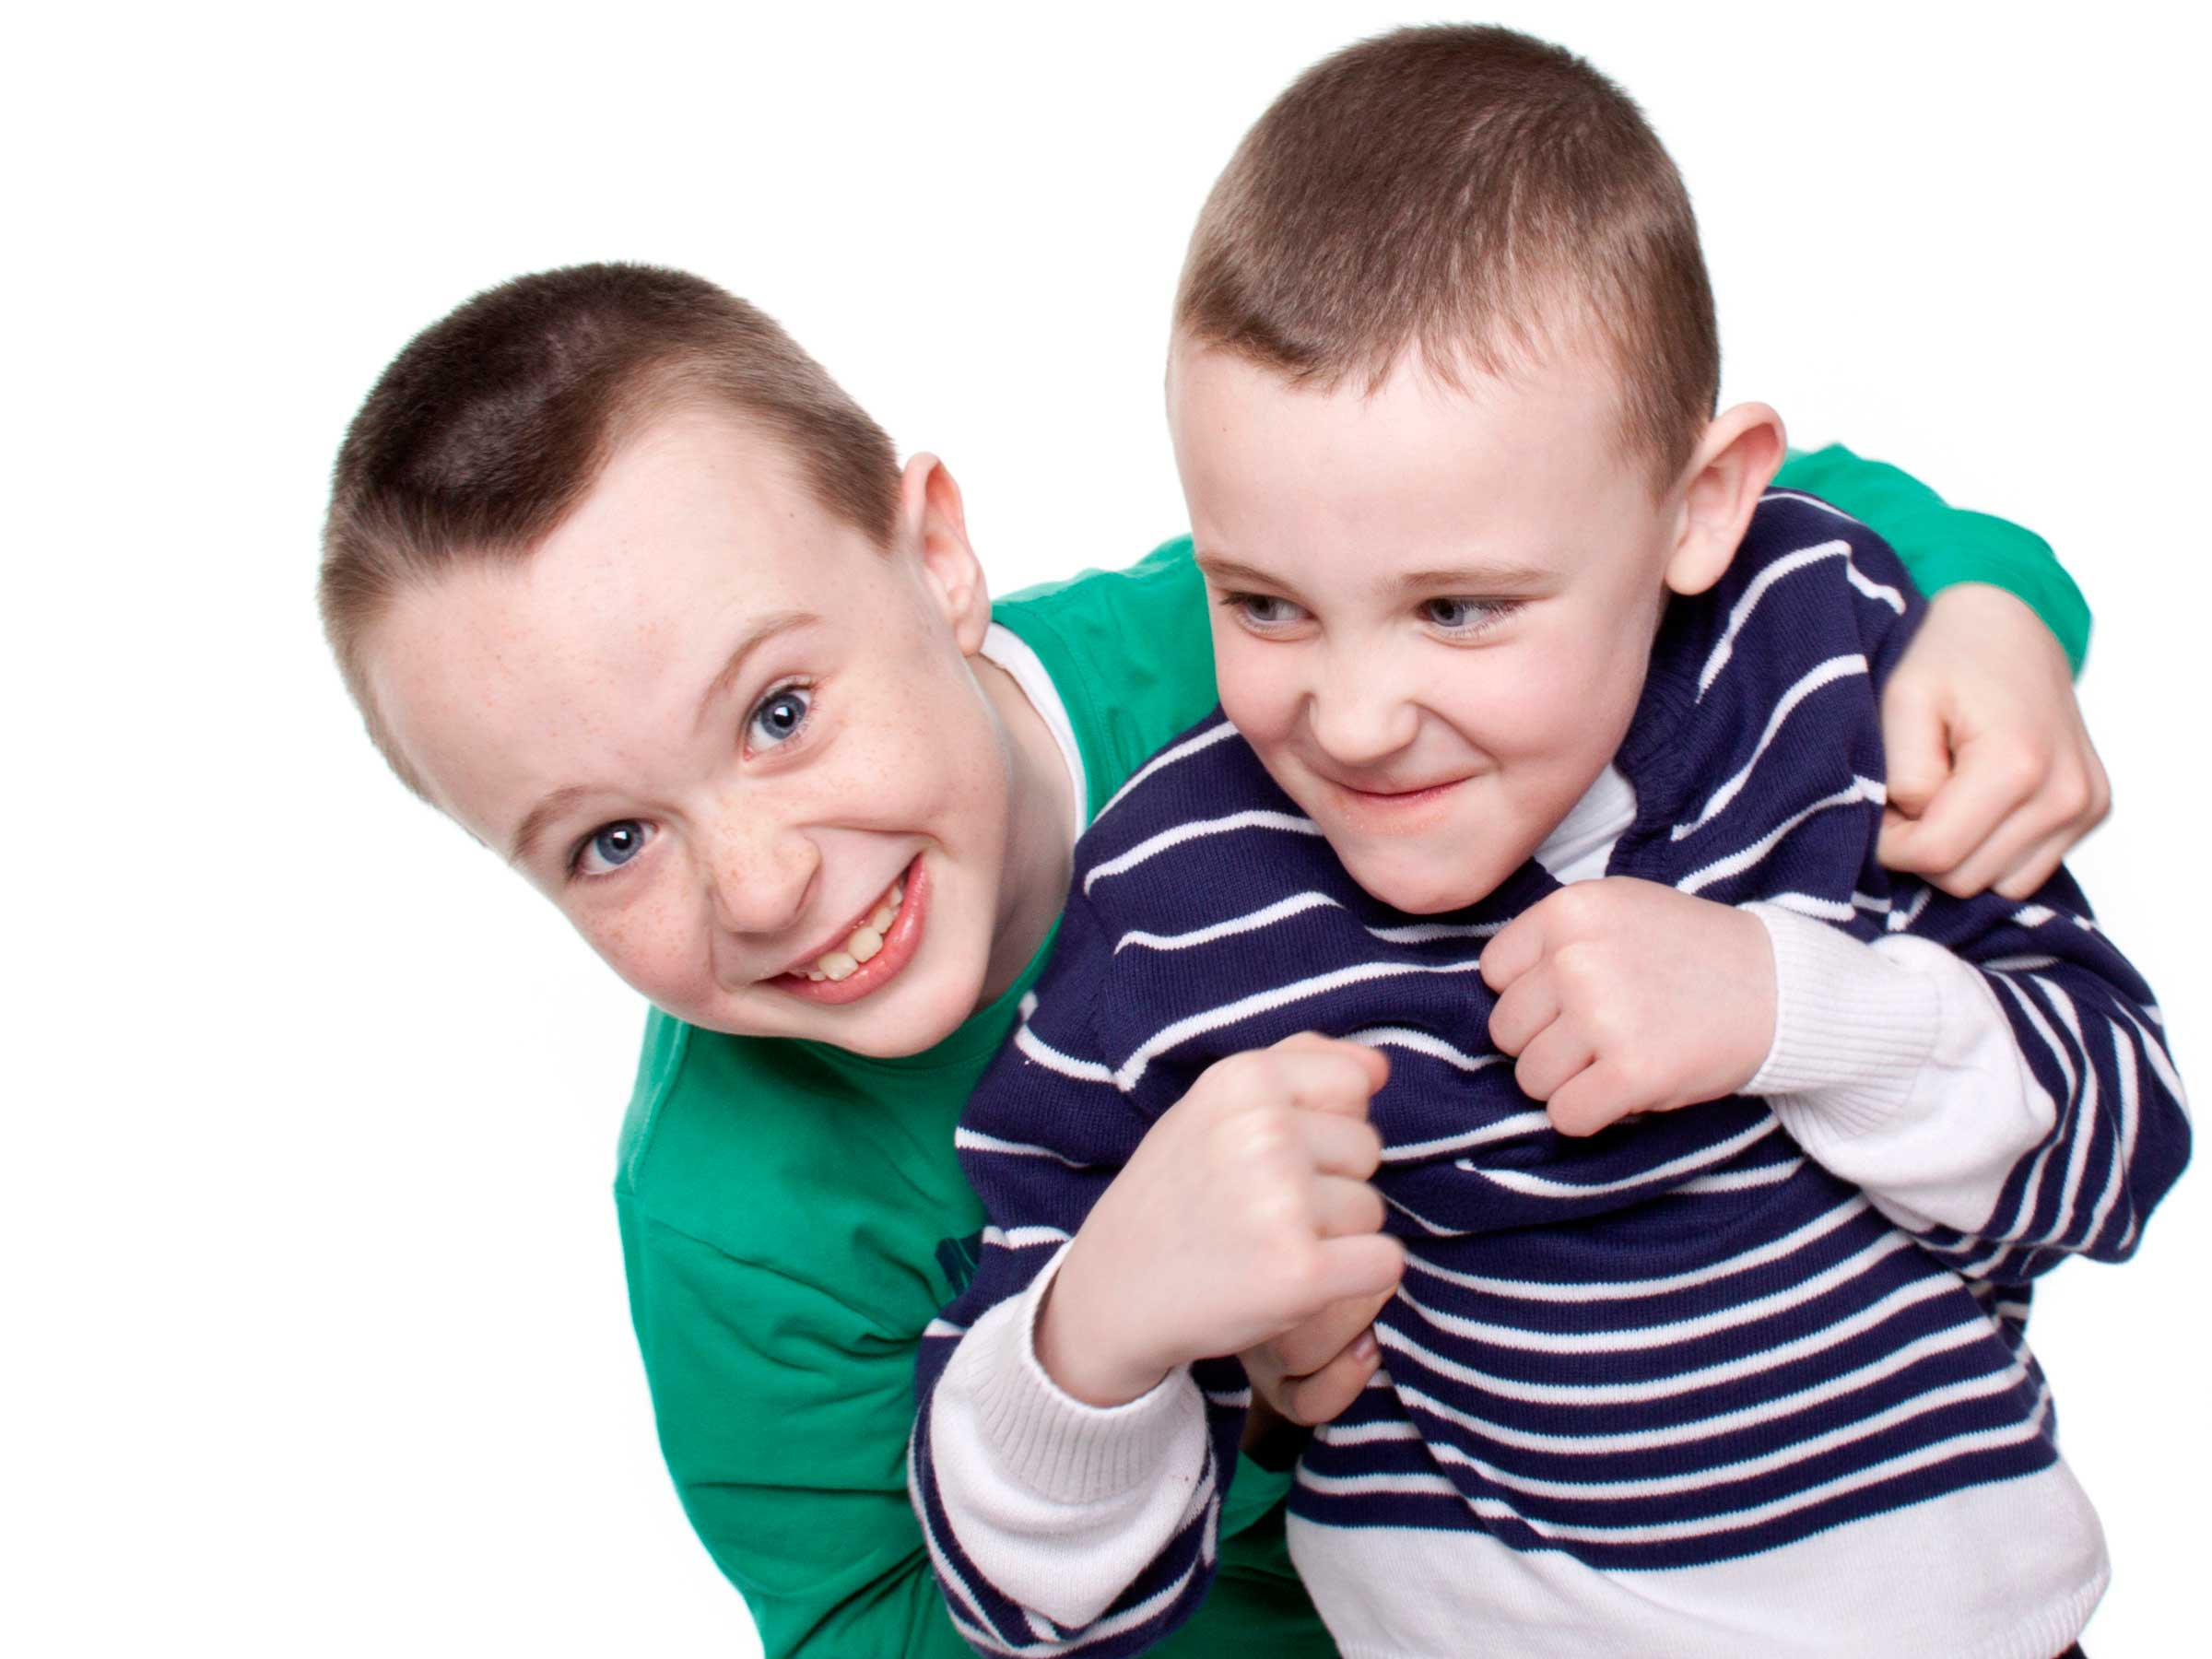 18-Home-Shoot-Boys-Brothers-Colour-Philip-Murray-Photography-Dublin